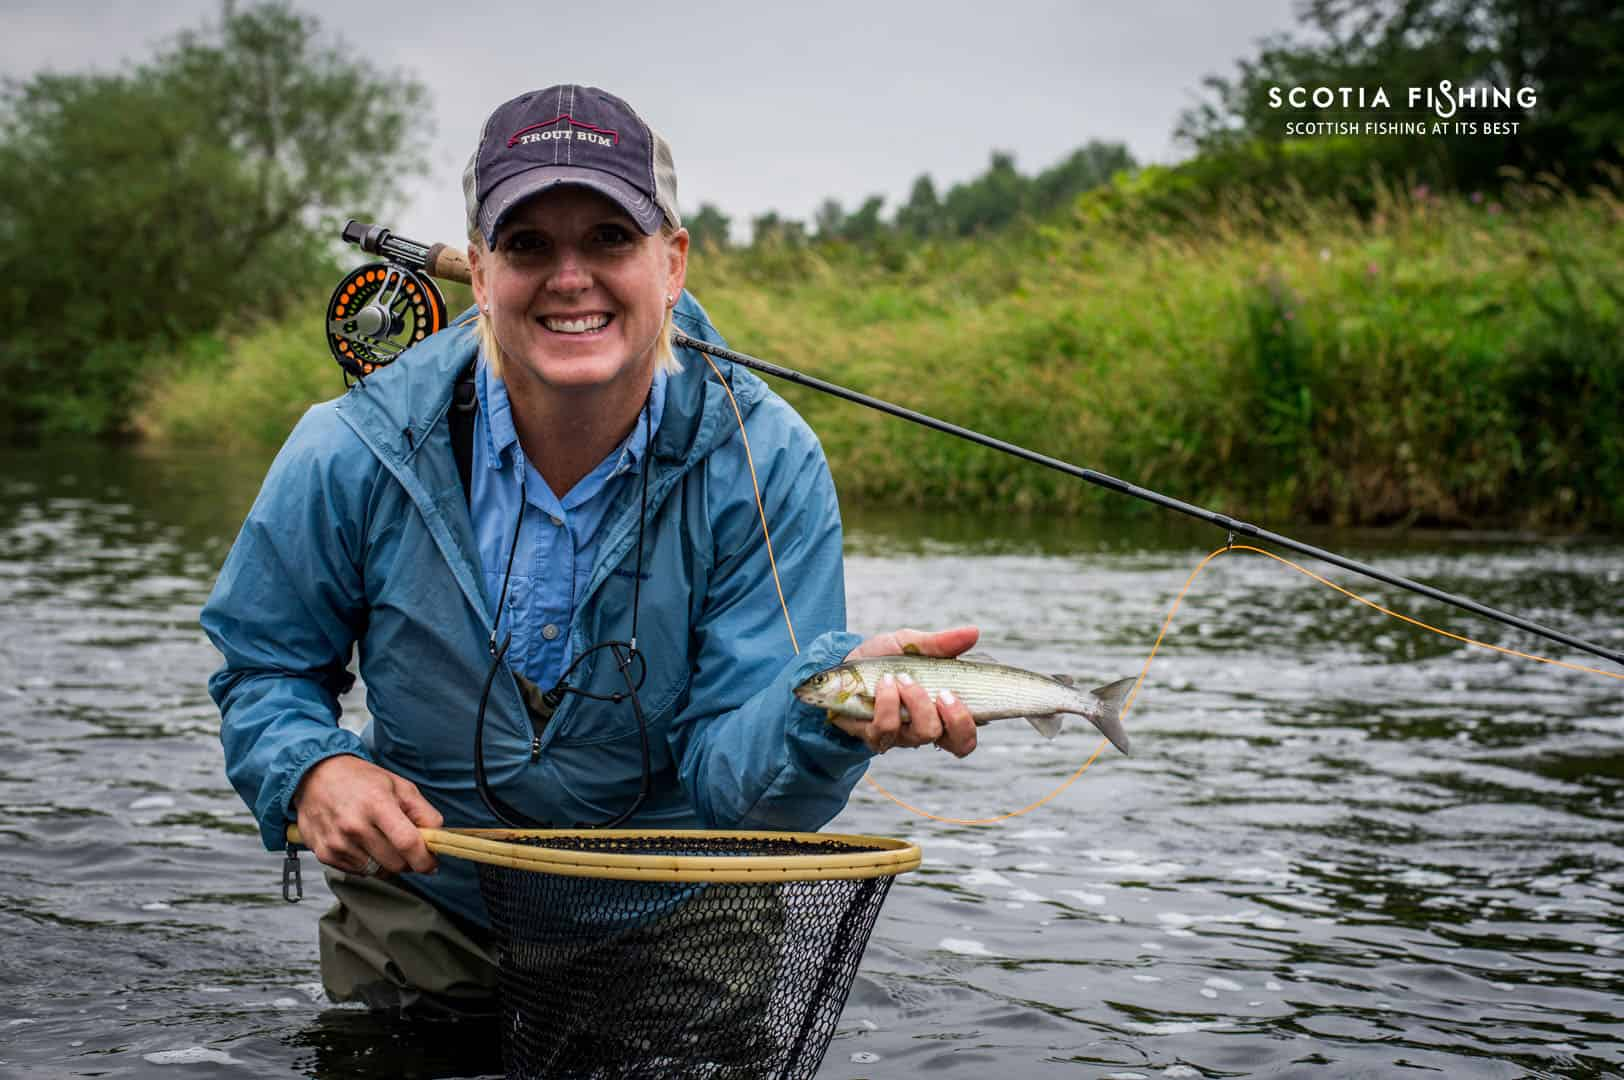 Grayling fishing edinburgh scotland for Fishing in scotland